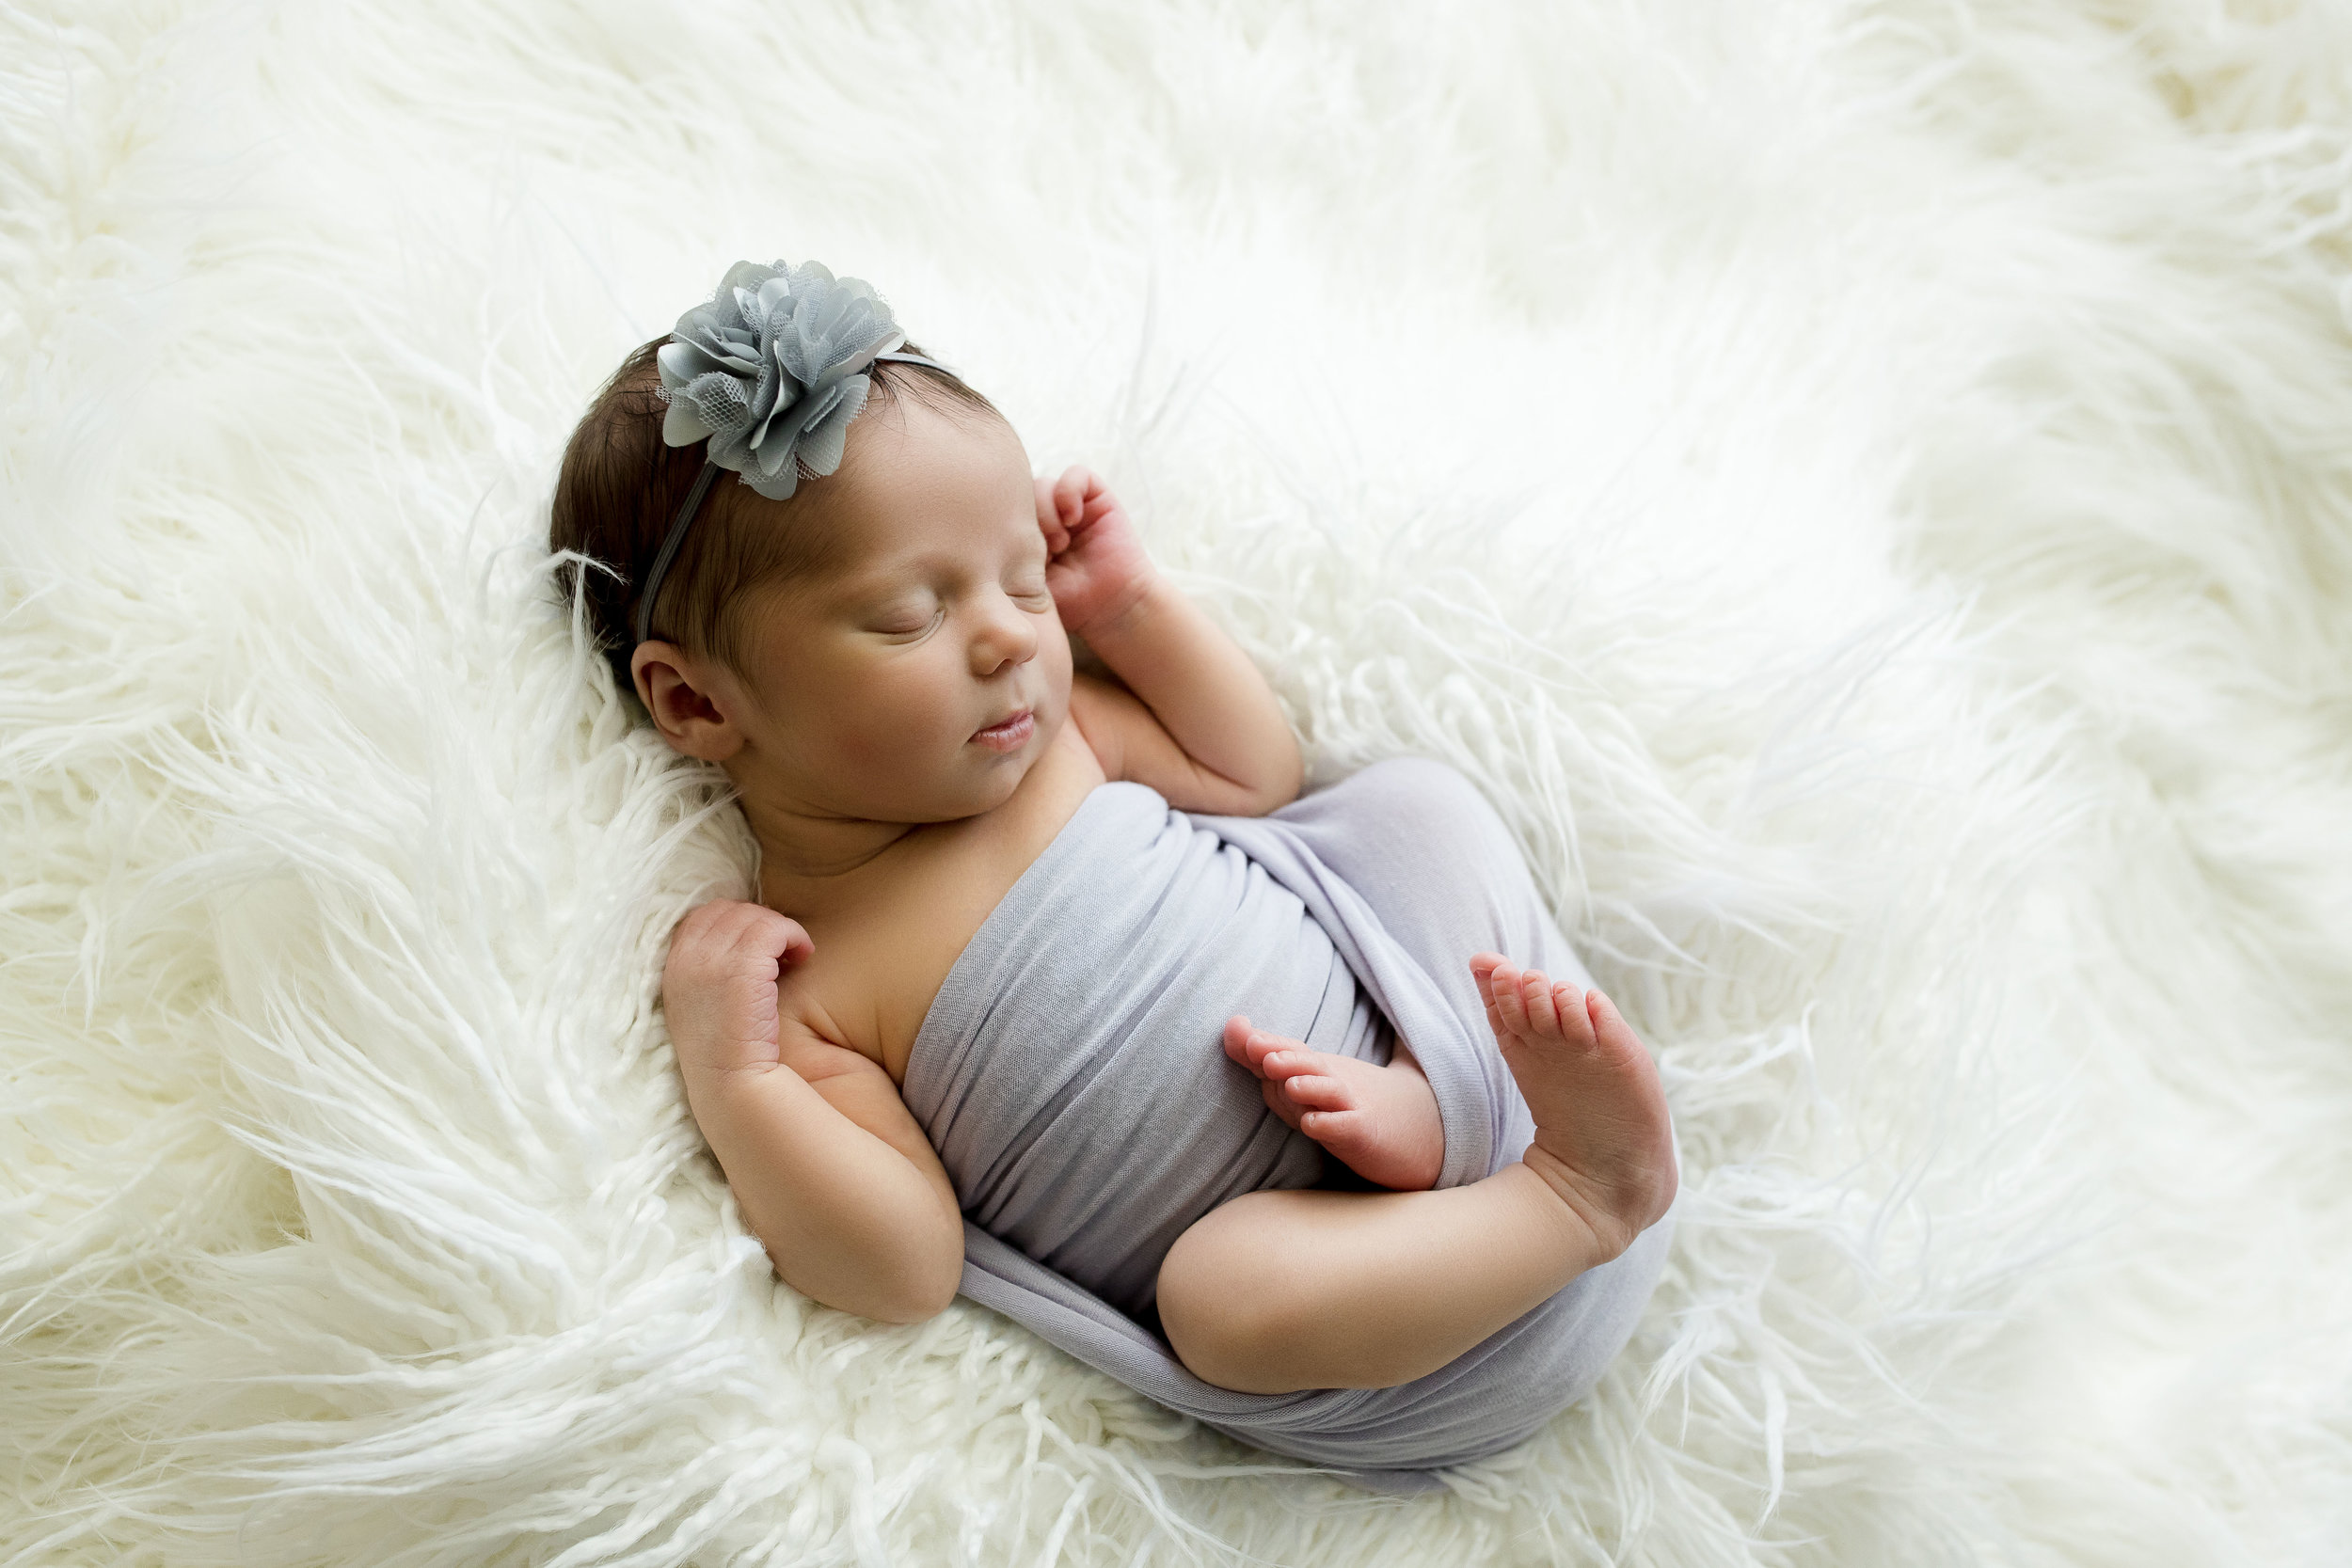 Baby girl swaddled in purple laying on white fur during newborn photo session in Iowa.